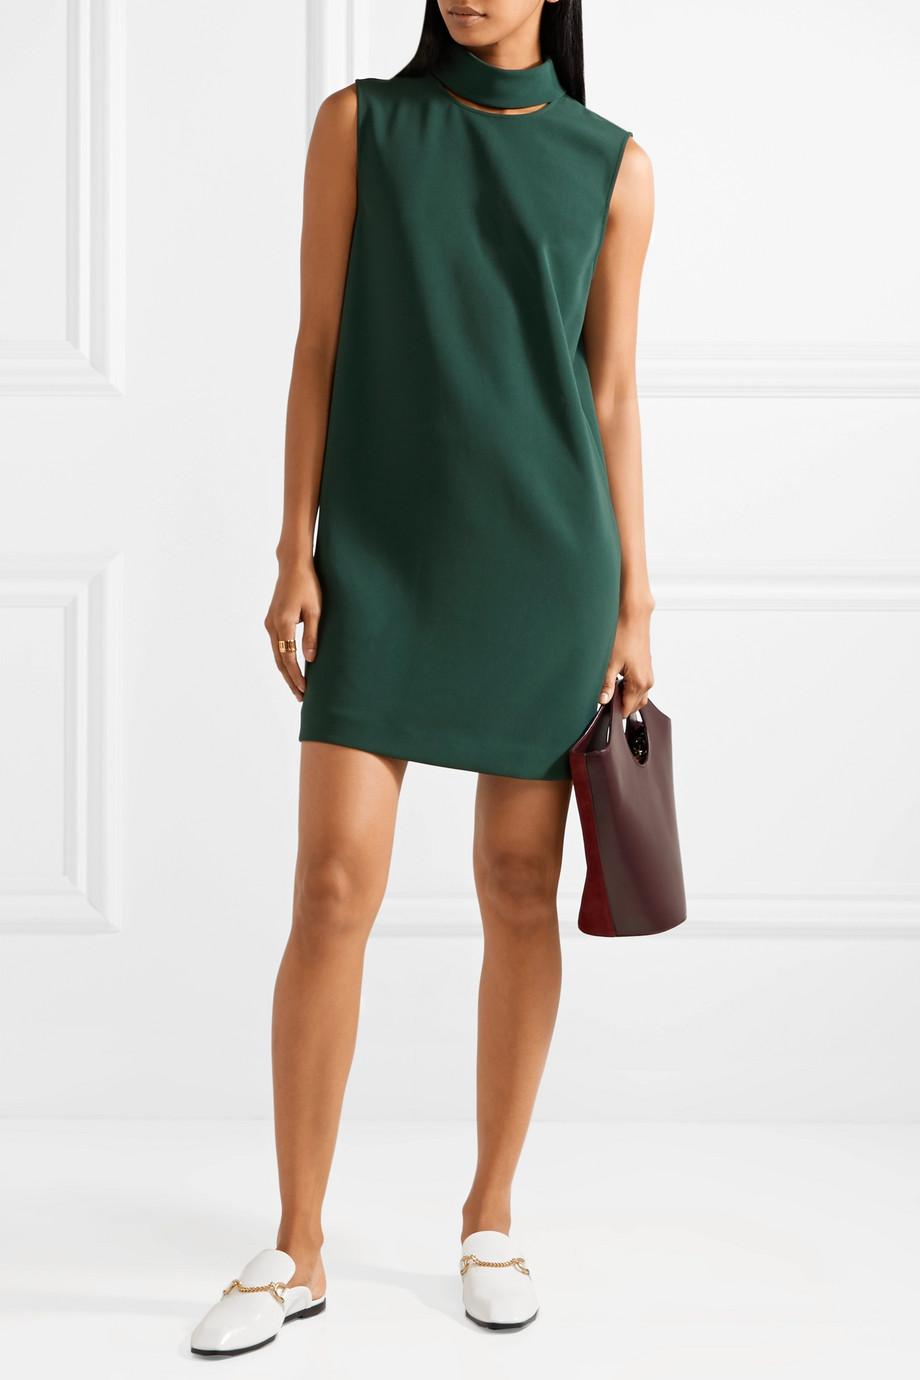 Cutout Crepe Mini Dress - Dark green Theory 2018 Newest Online Cheap New Styles Where To Buy Low Price MUSncGH